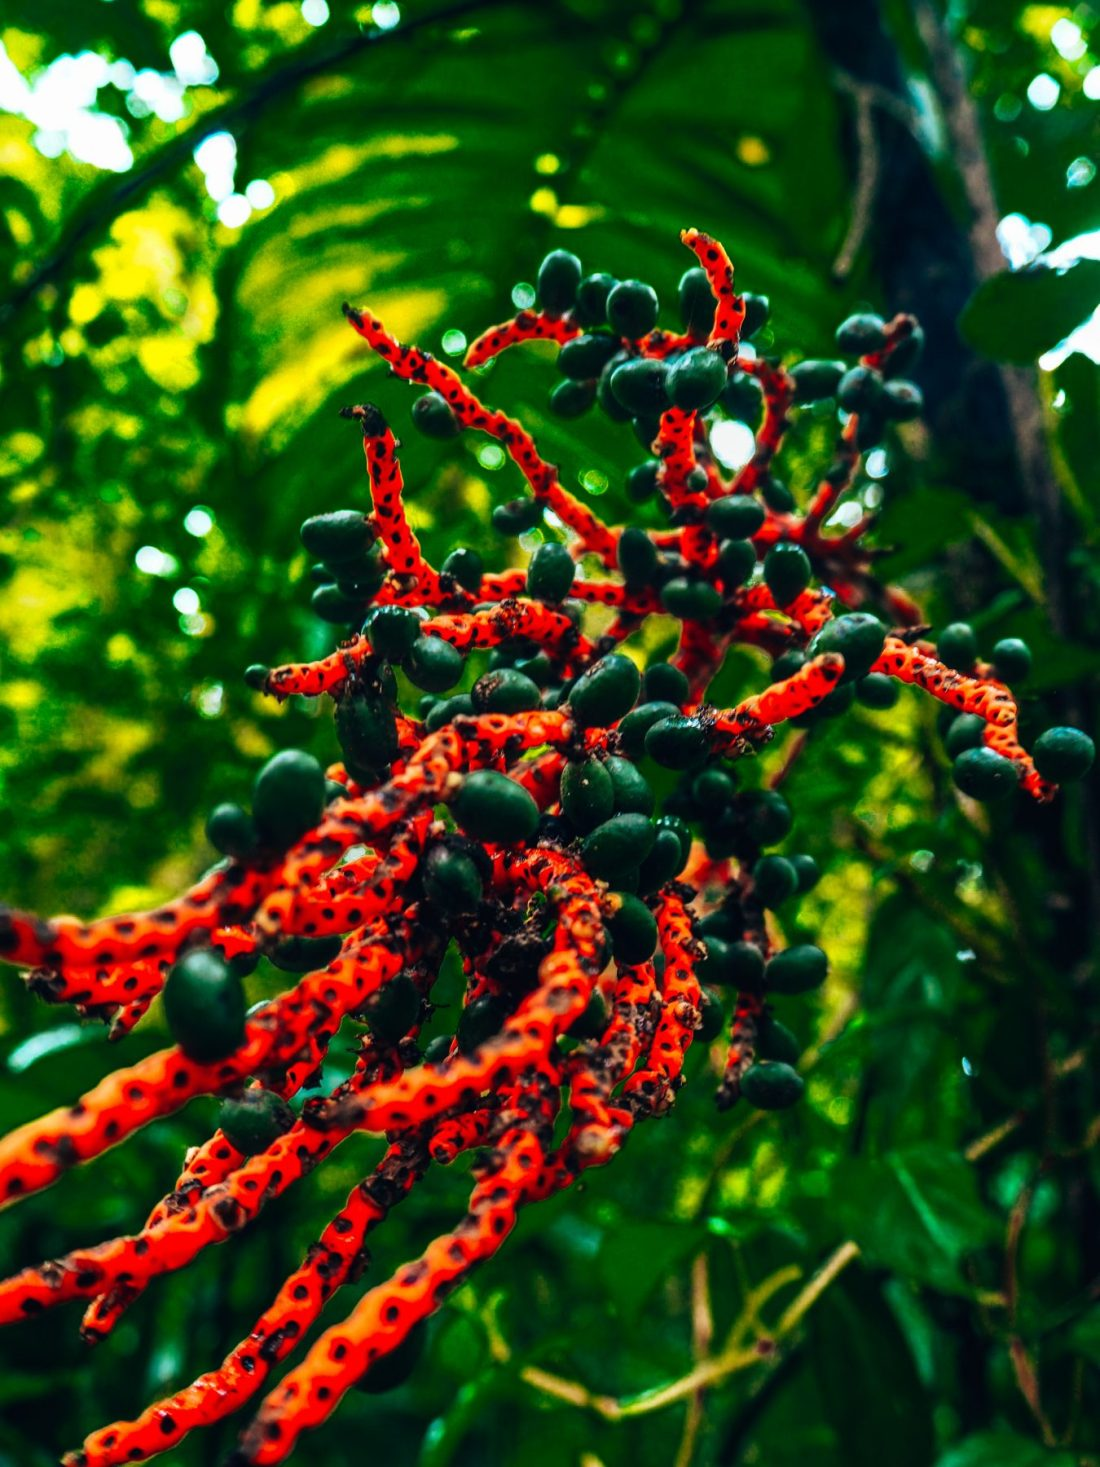 Macro nature shots from Monteverde, red spotted plant with berries close up in the jungle